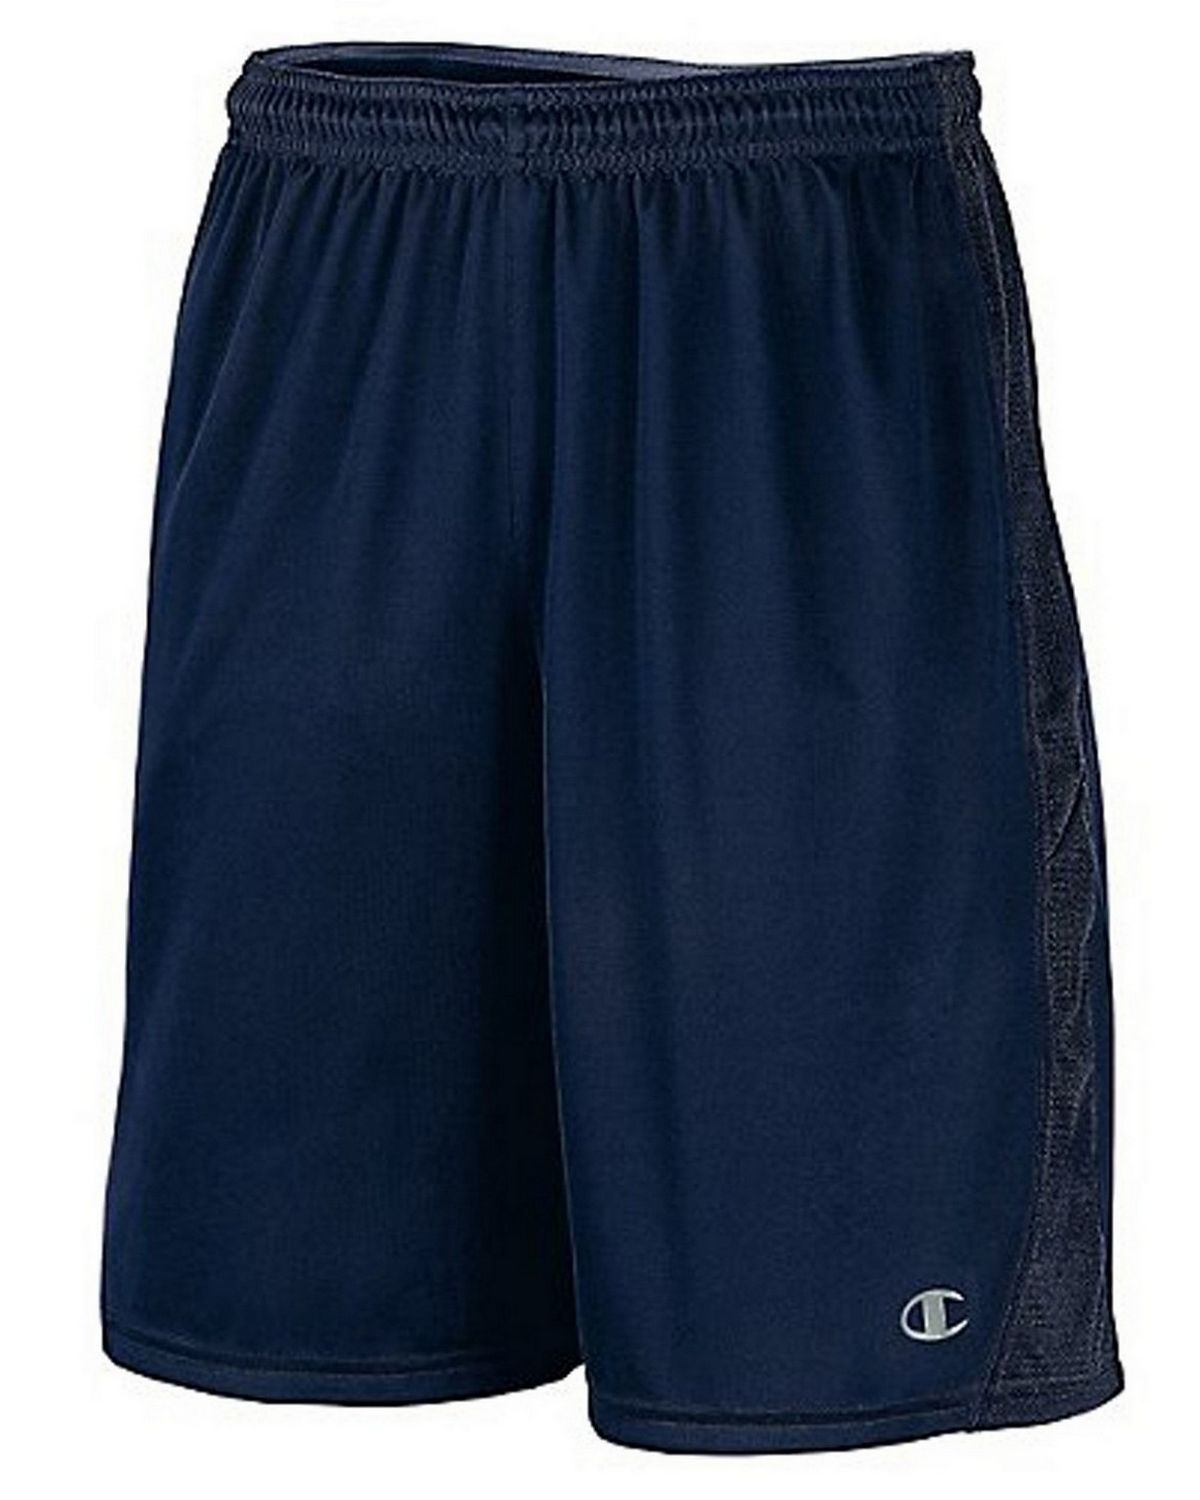 Champion 86703 Vapor PowerTrain Knit Shorts - Navy - L 86703